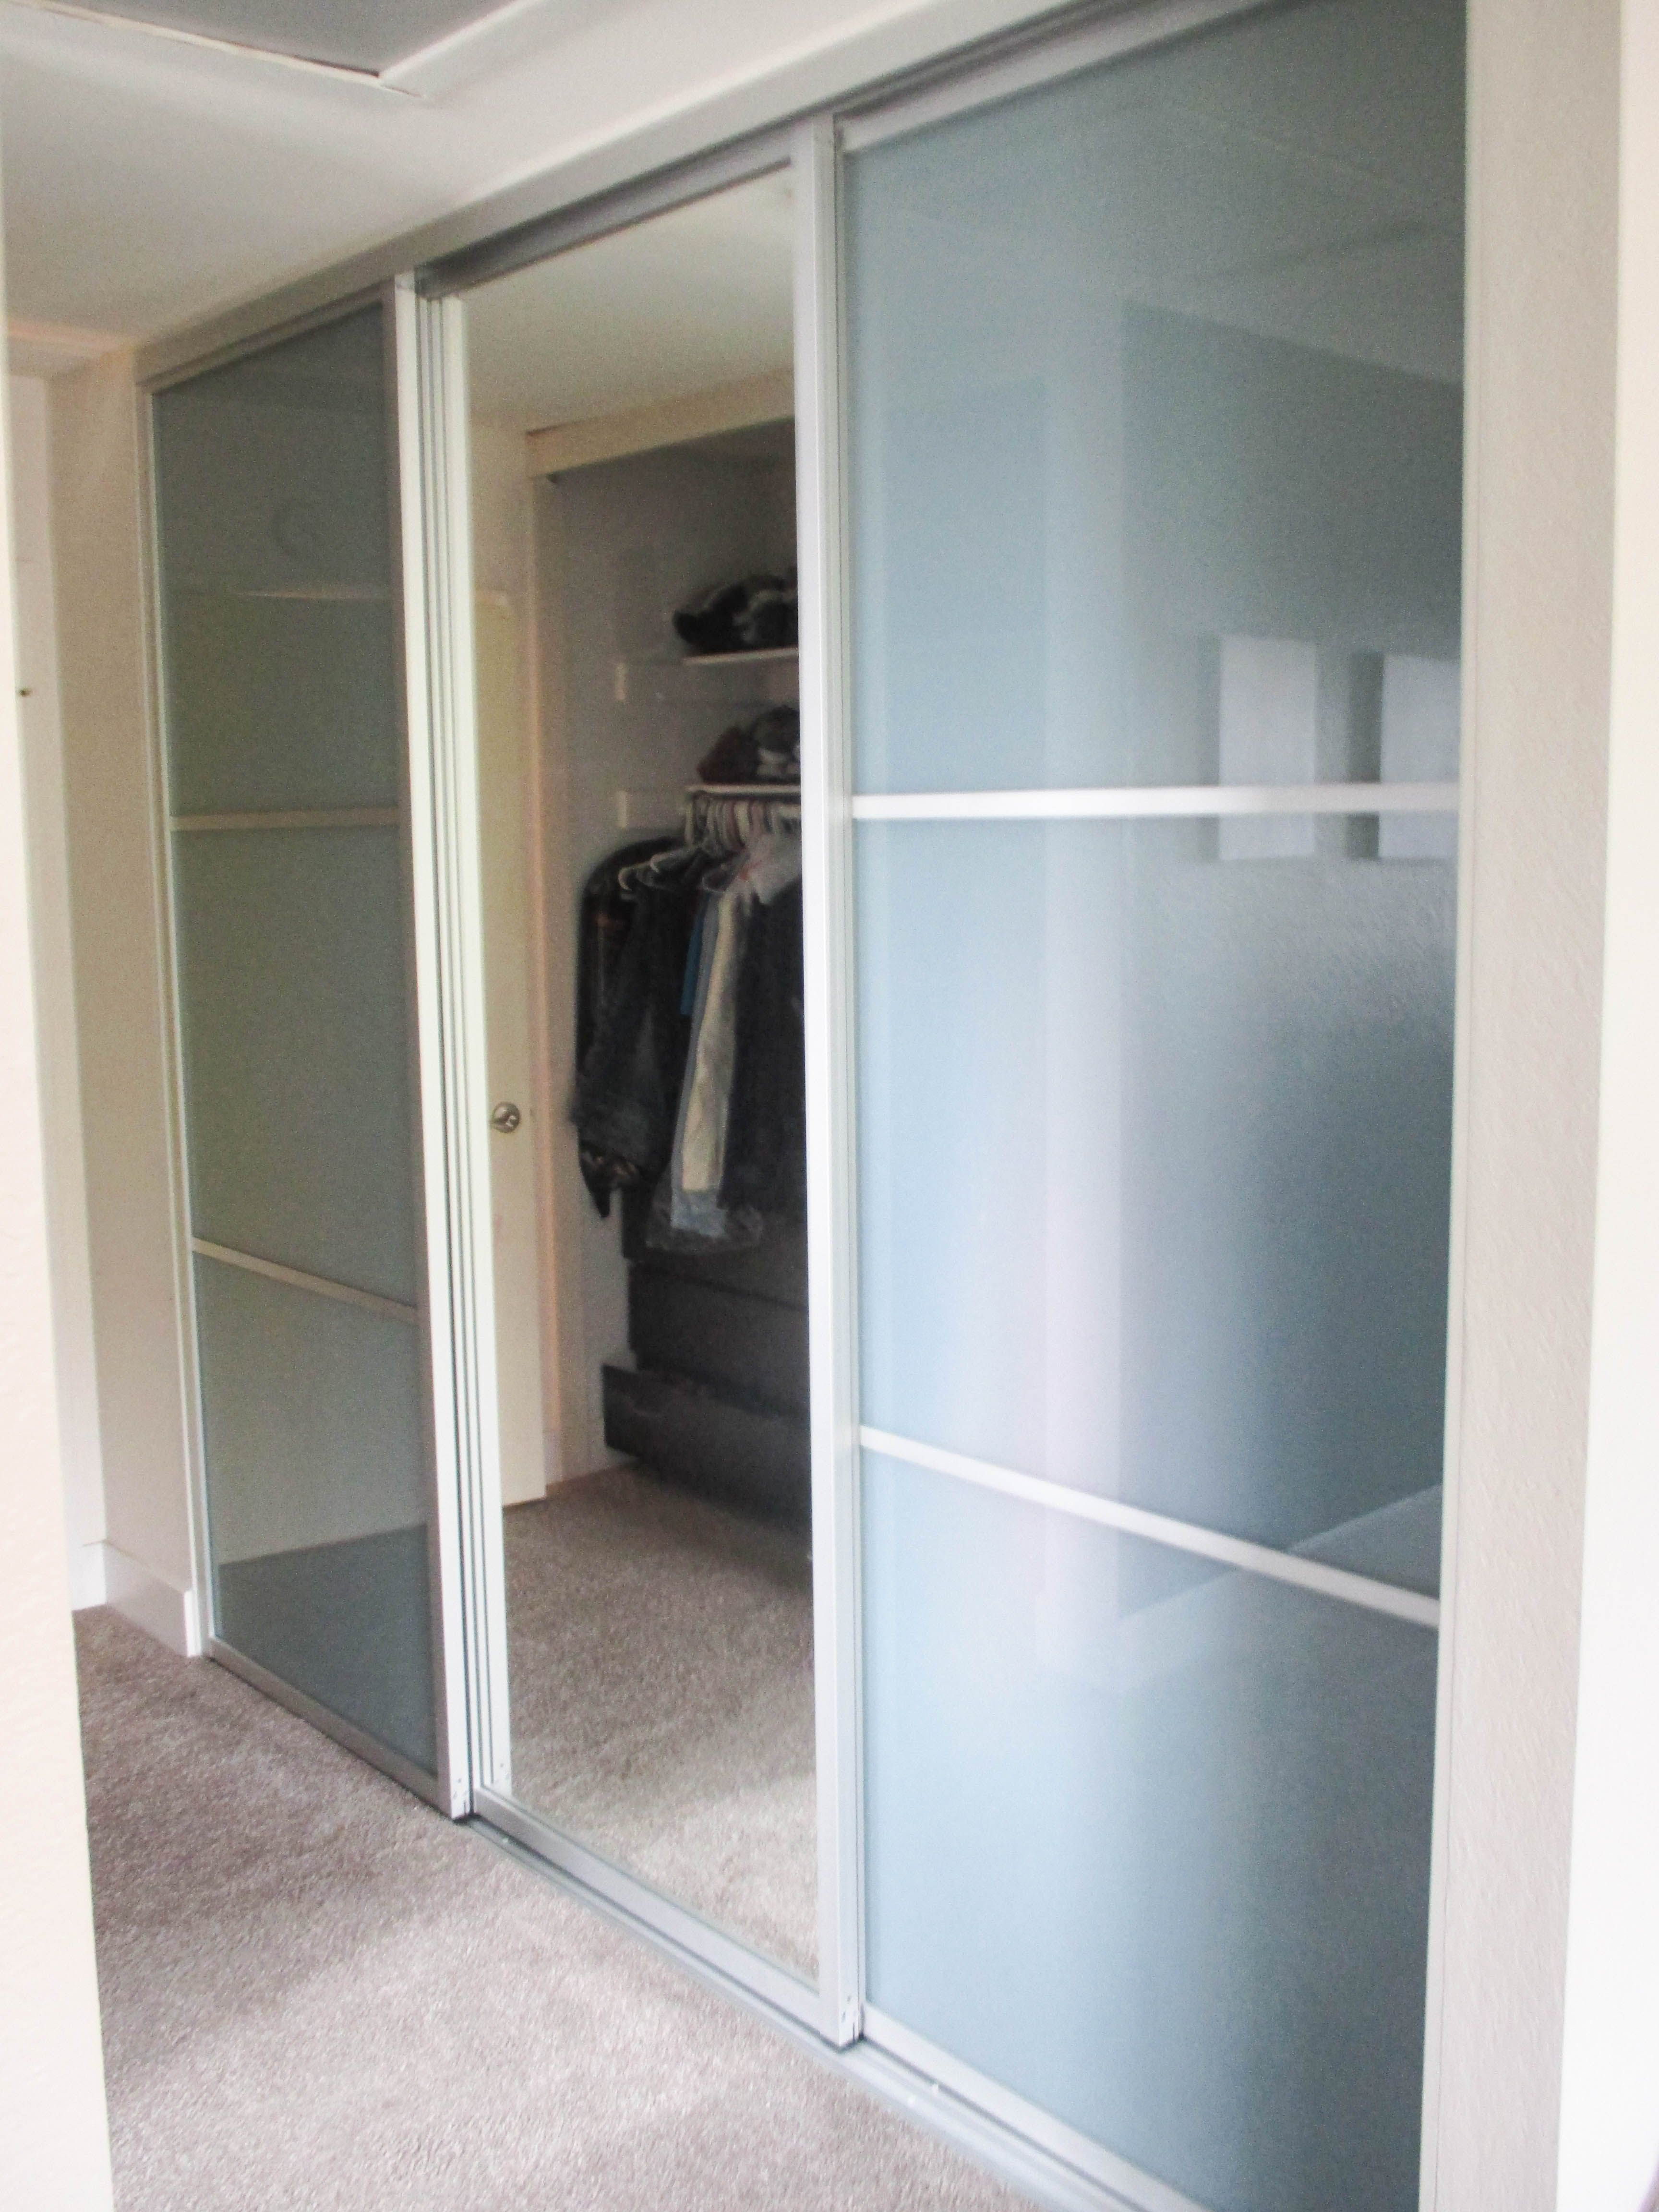 Gentil We Have Closet Doors To Compliment Your Homeu0027s Contemporary Interior! Check  Out These 3